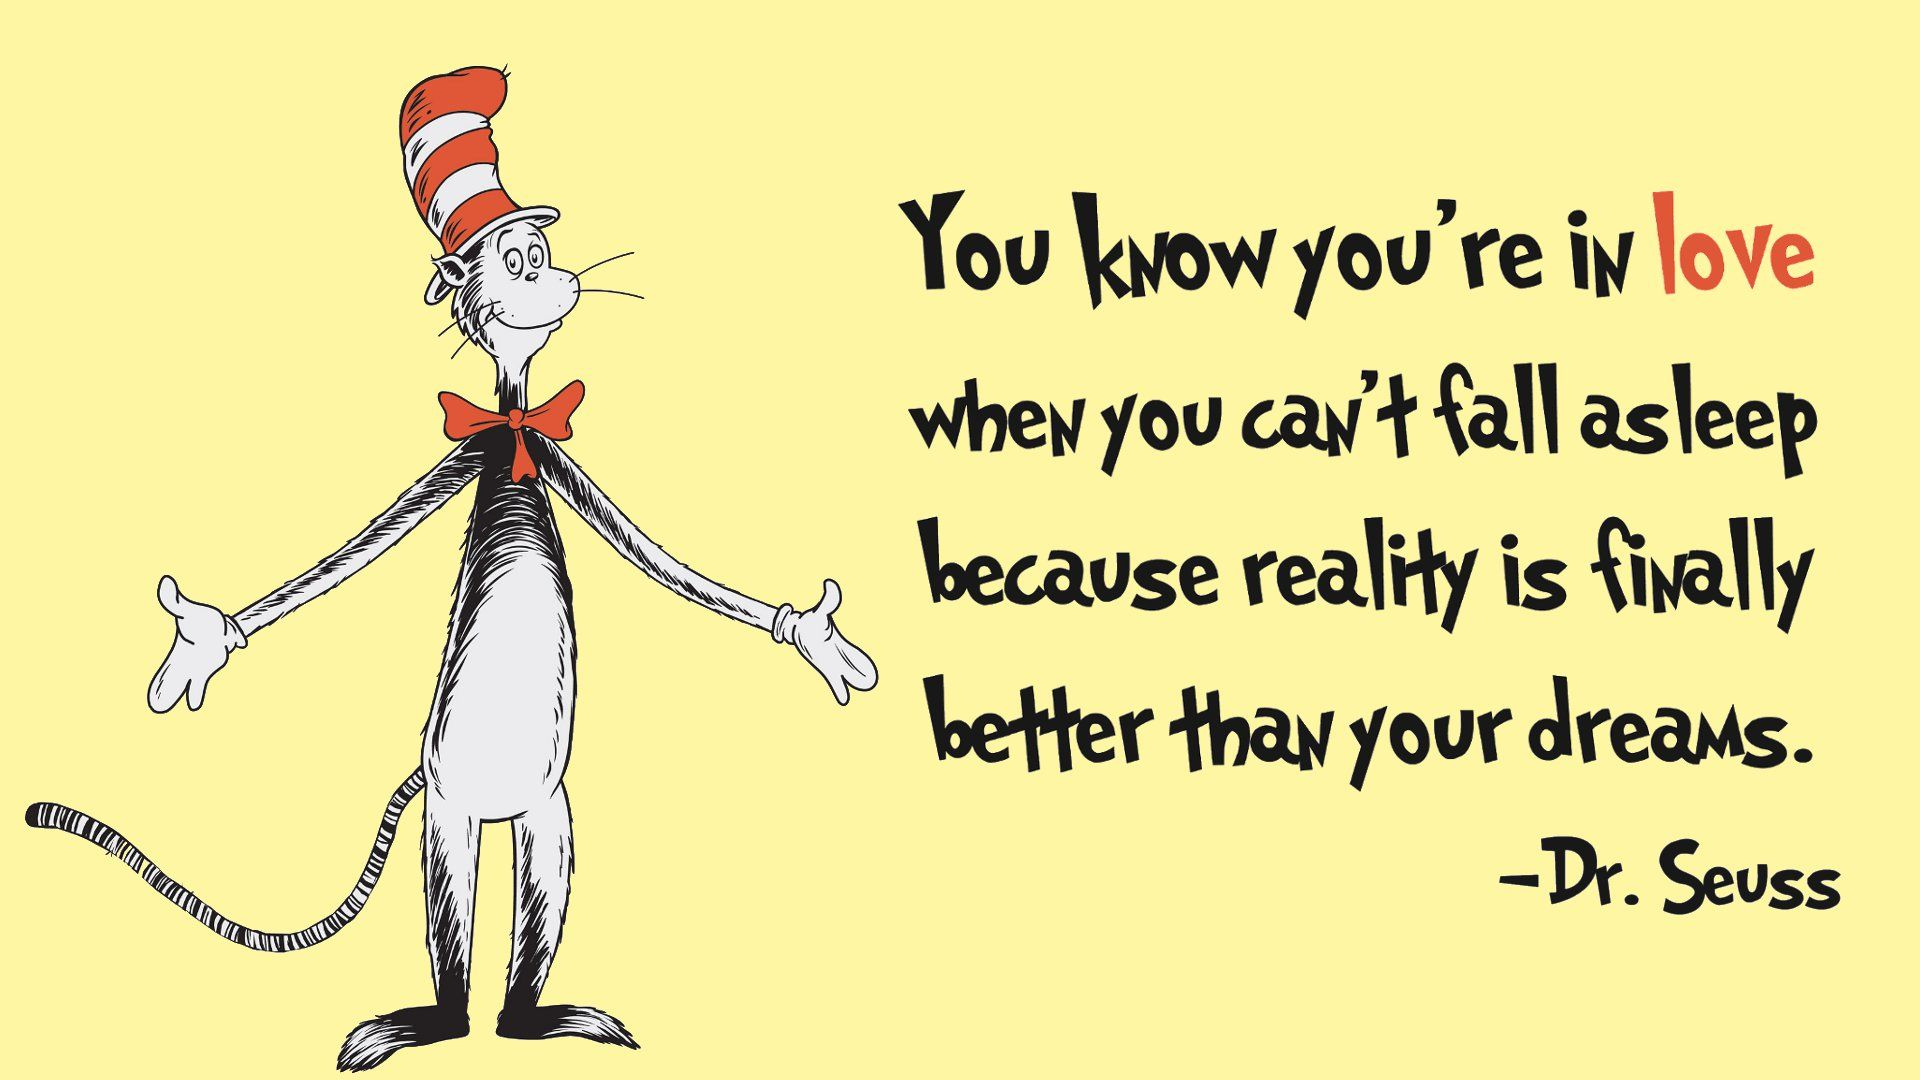 You Know You Re In Love Dr Seuss Quotes Seuss Quotes Wedding Quotes Funny